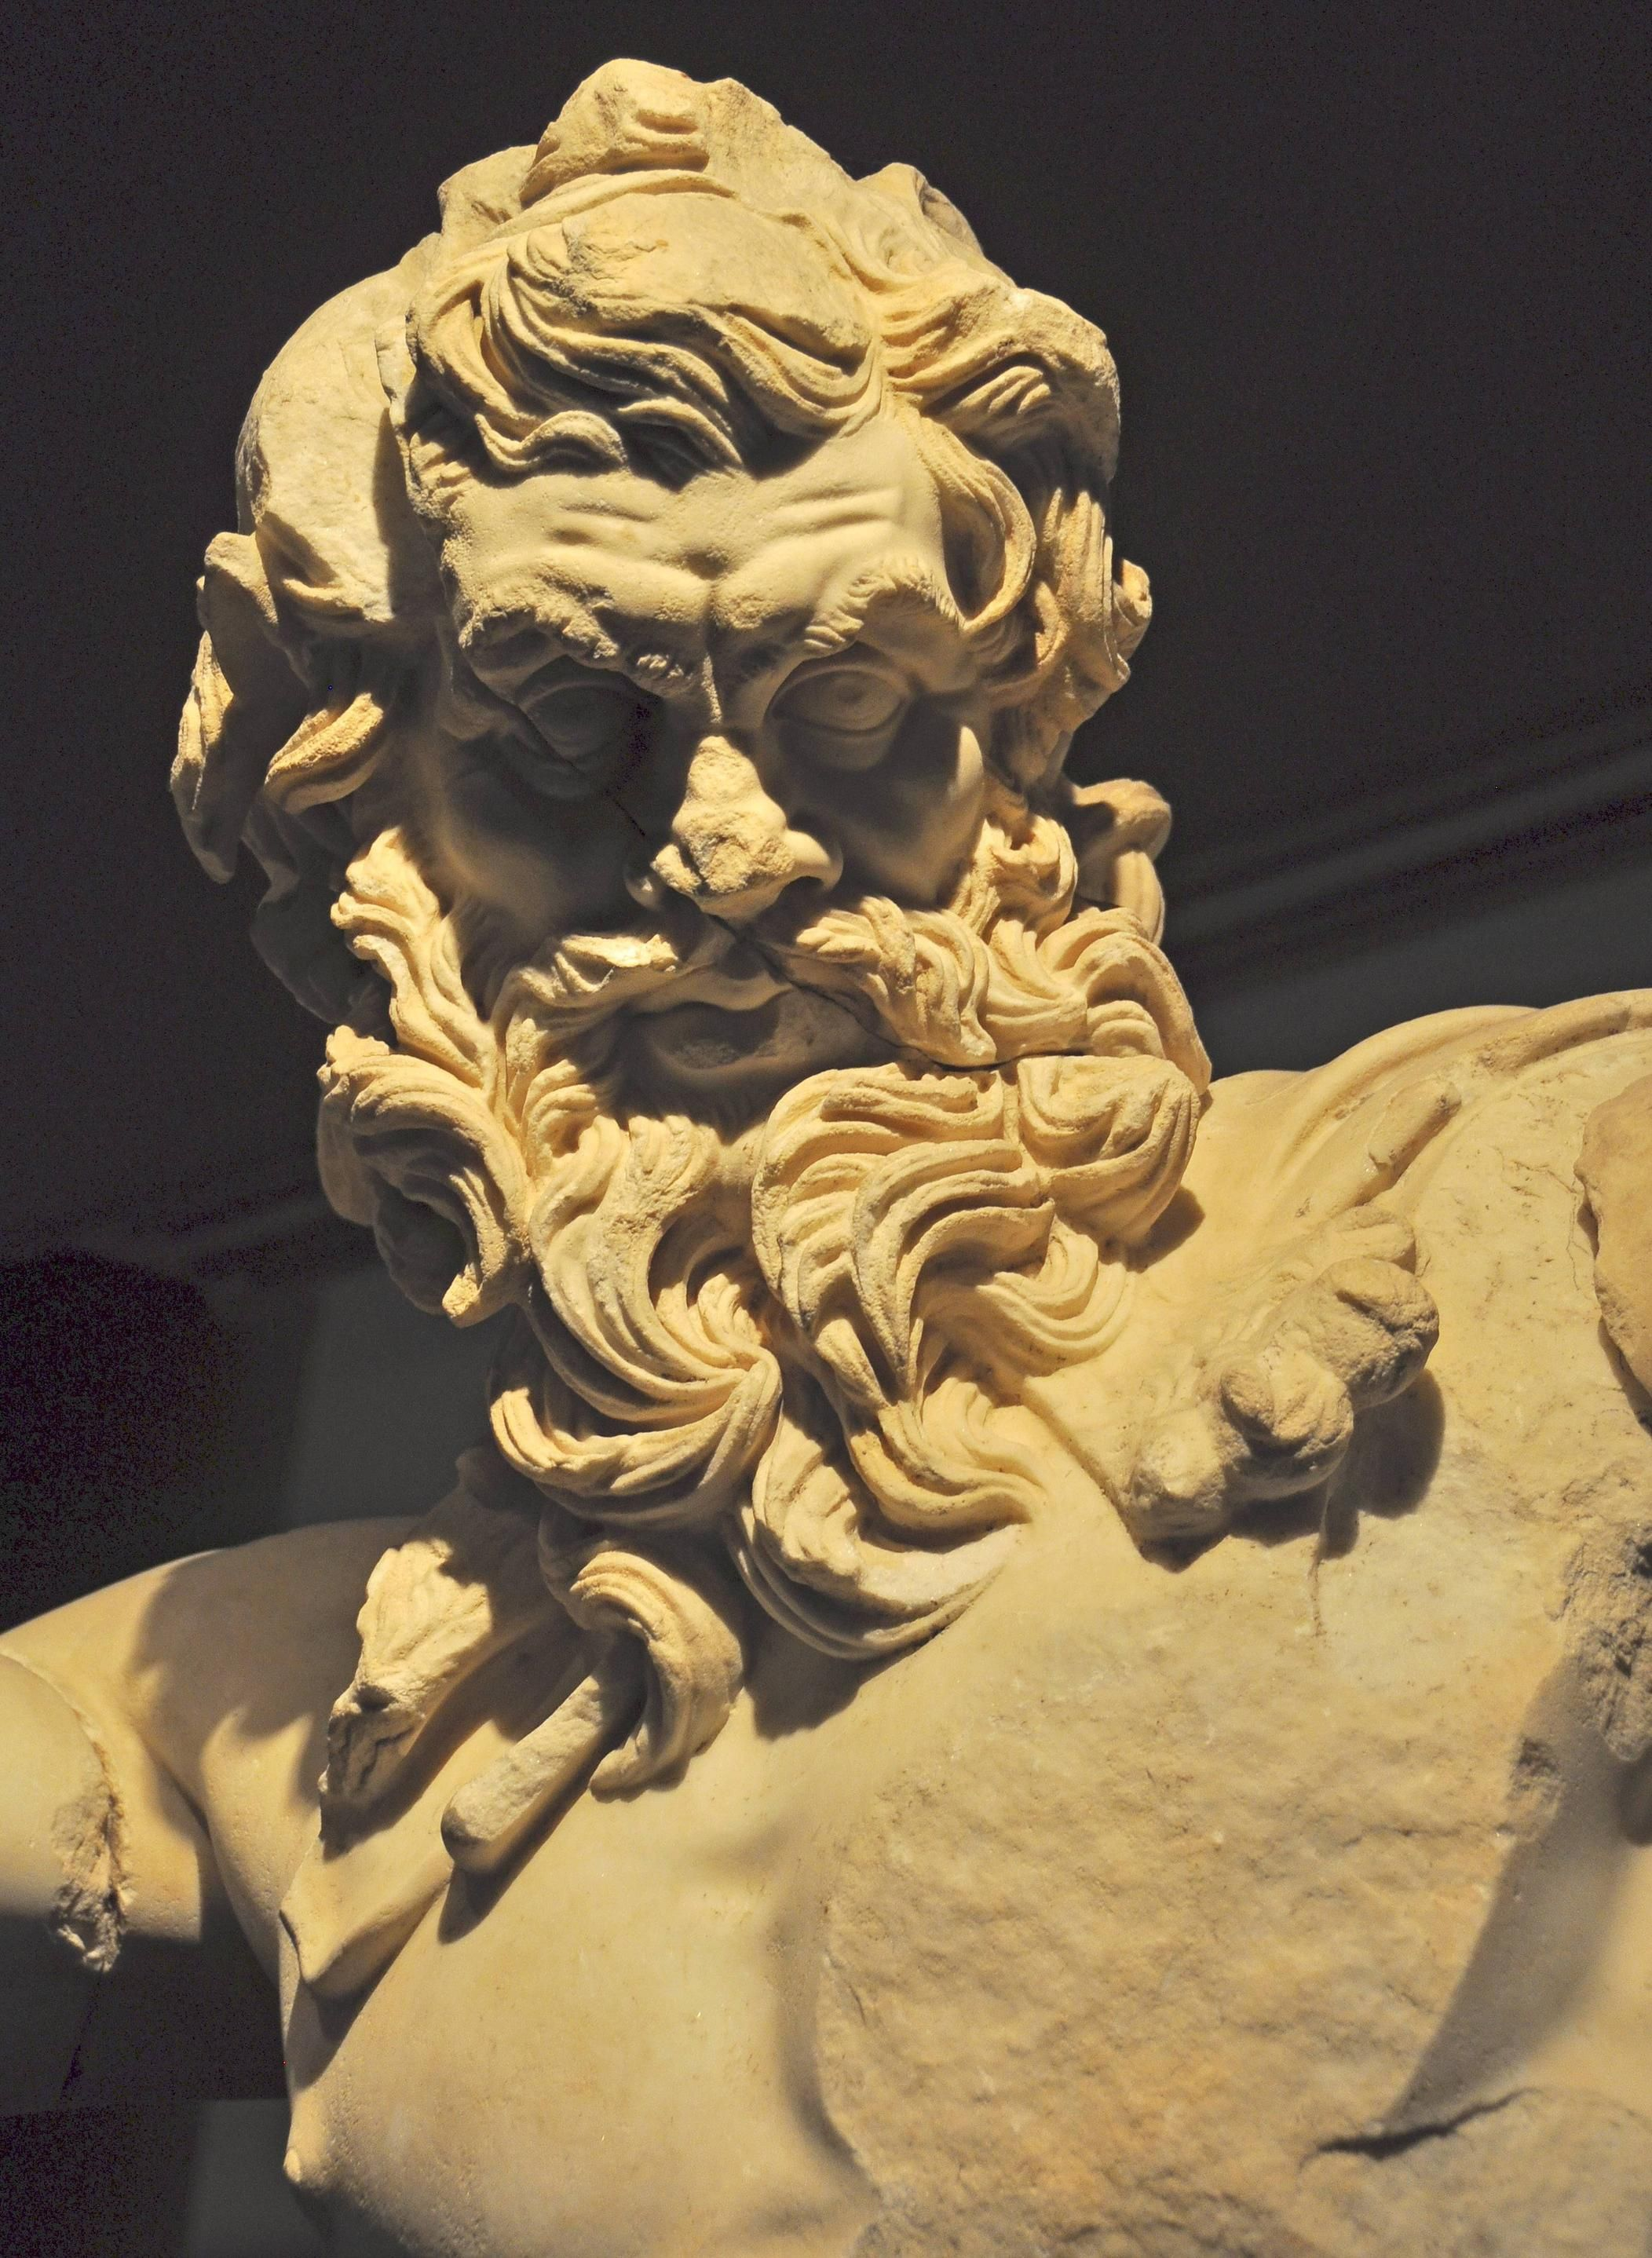 Statue of Zeus, Antalya Museum, Turkey. I have come up with the idea of drawing Ahab resembling a wrathful Zeus.